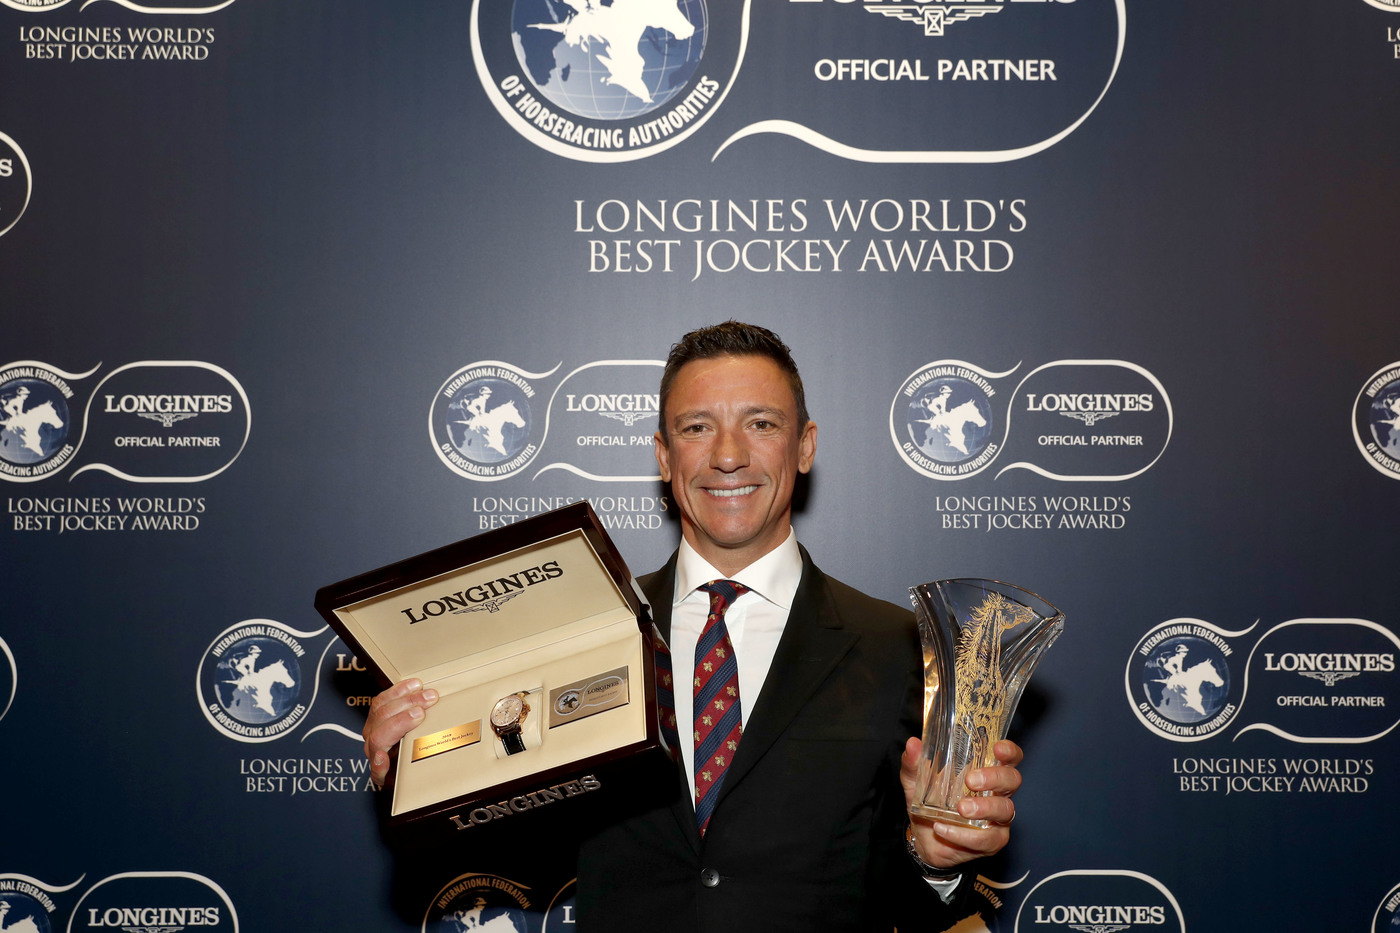 Longines Flat Racing Event: Frankie Dettori Crowned the 2018 Longines World's Best Jockey  7